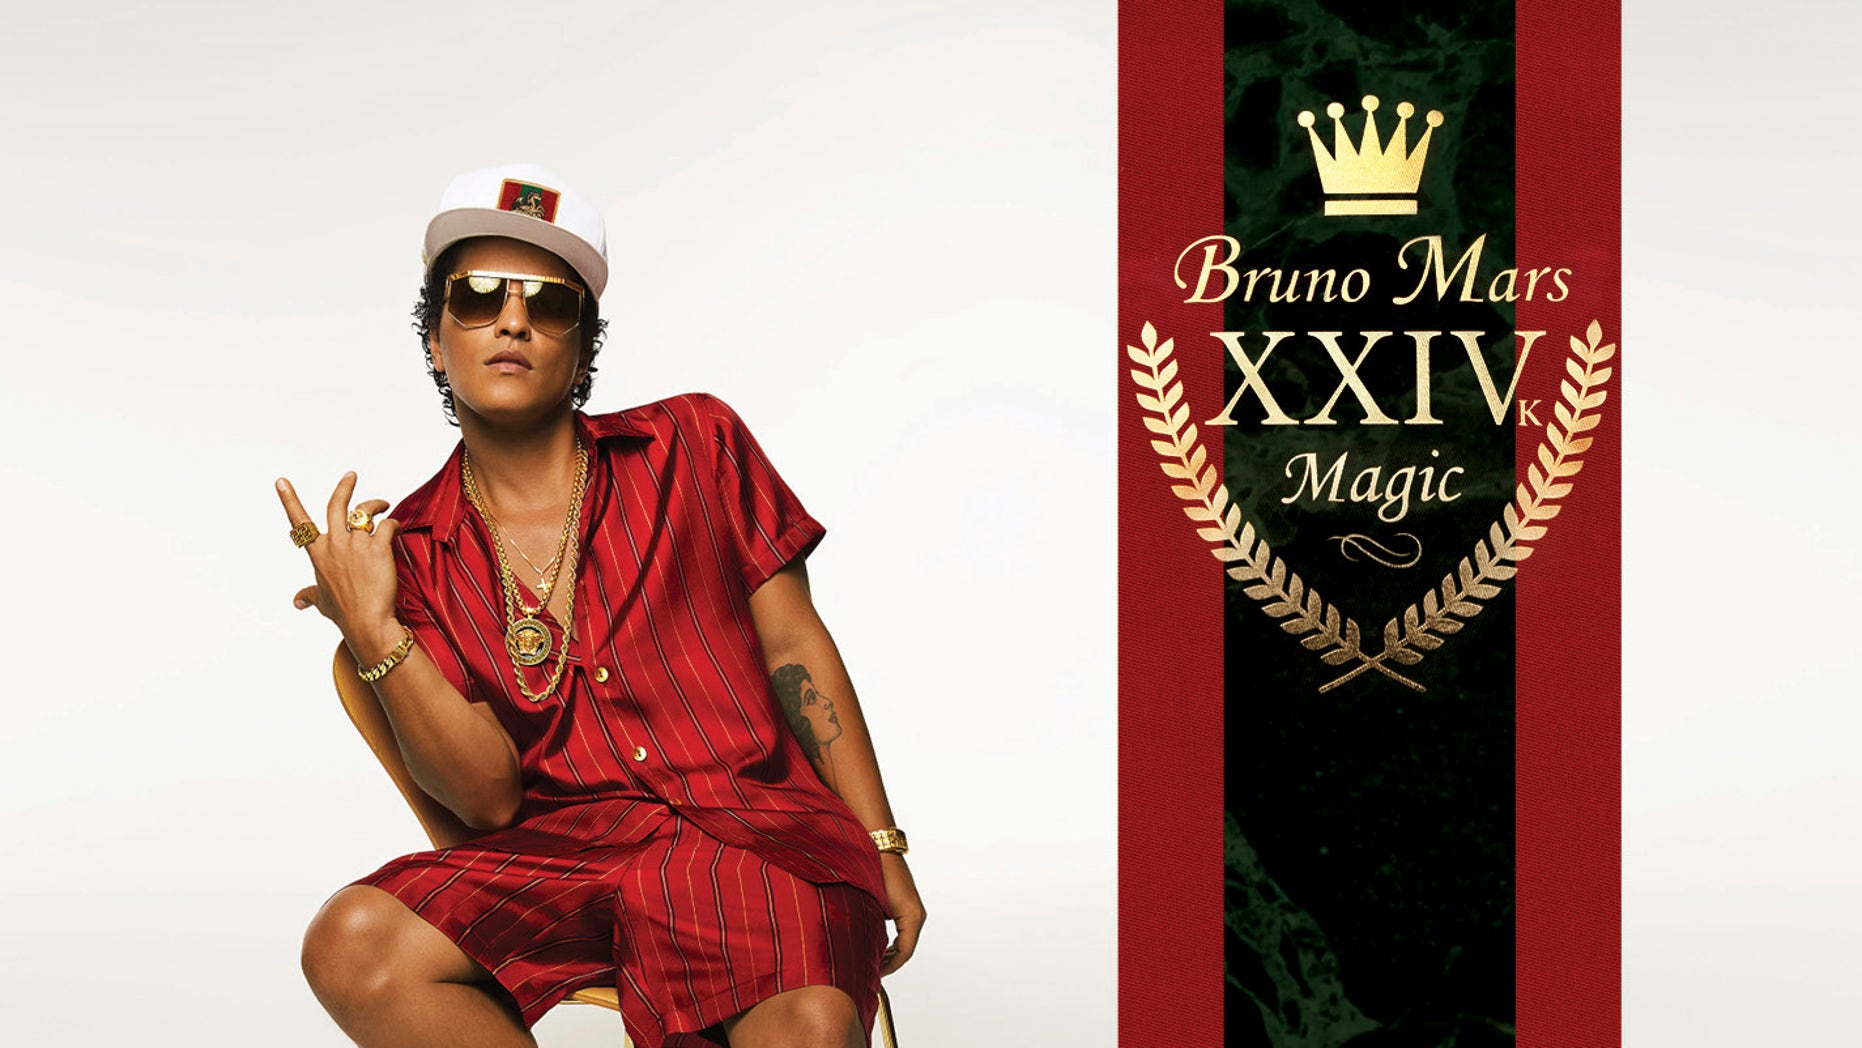 """This cover image released by Atlantic Records shows, """"24K Magic,"""" the latest release by Bruno Mars. Mars, 31, said the album was inspired by his love for R&B acts like New Edition, Boyz II Men and Jodeci. (Atlantic Records via AP)"""